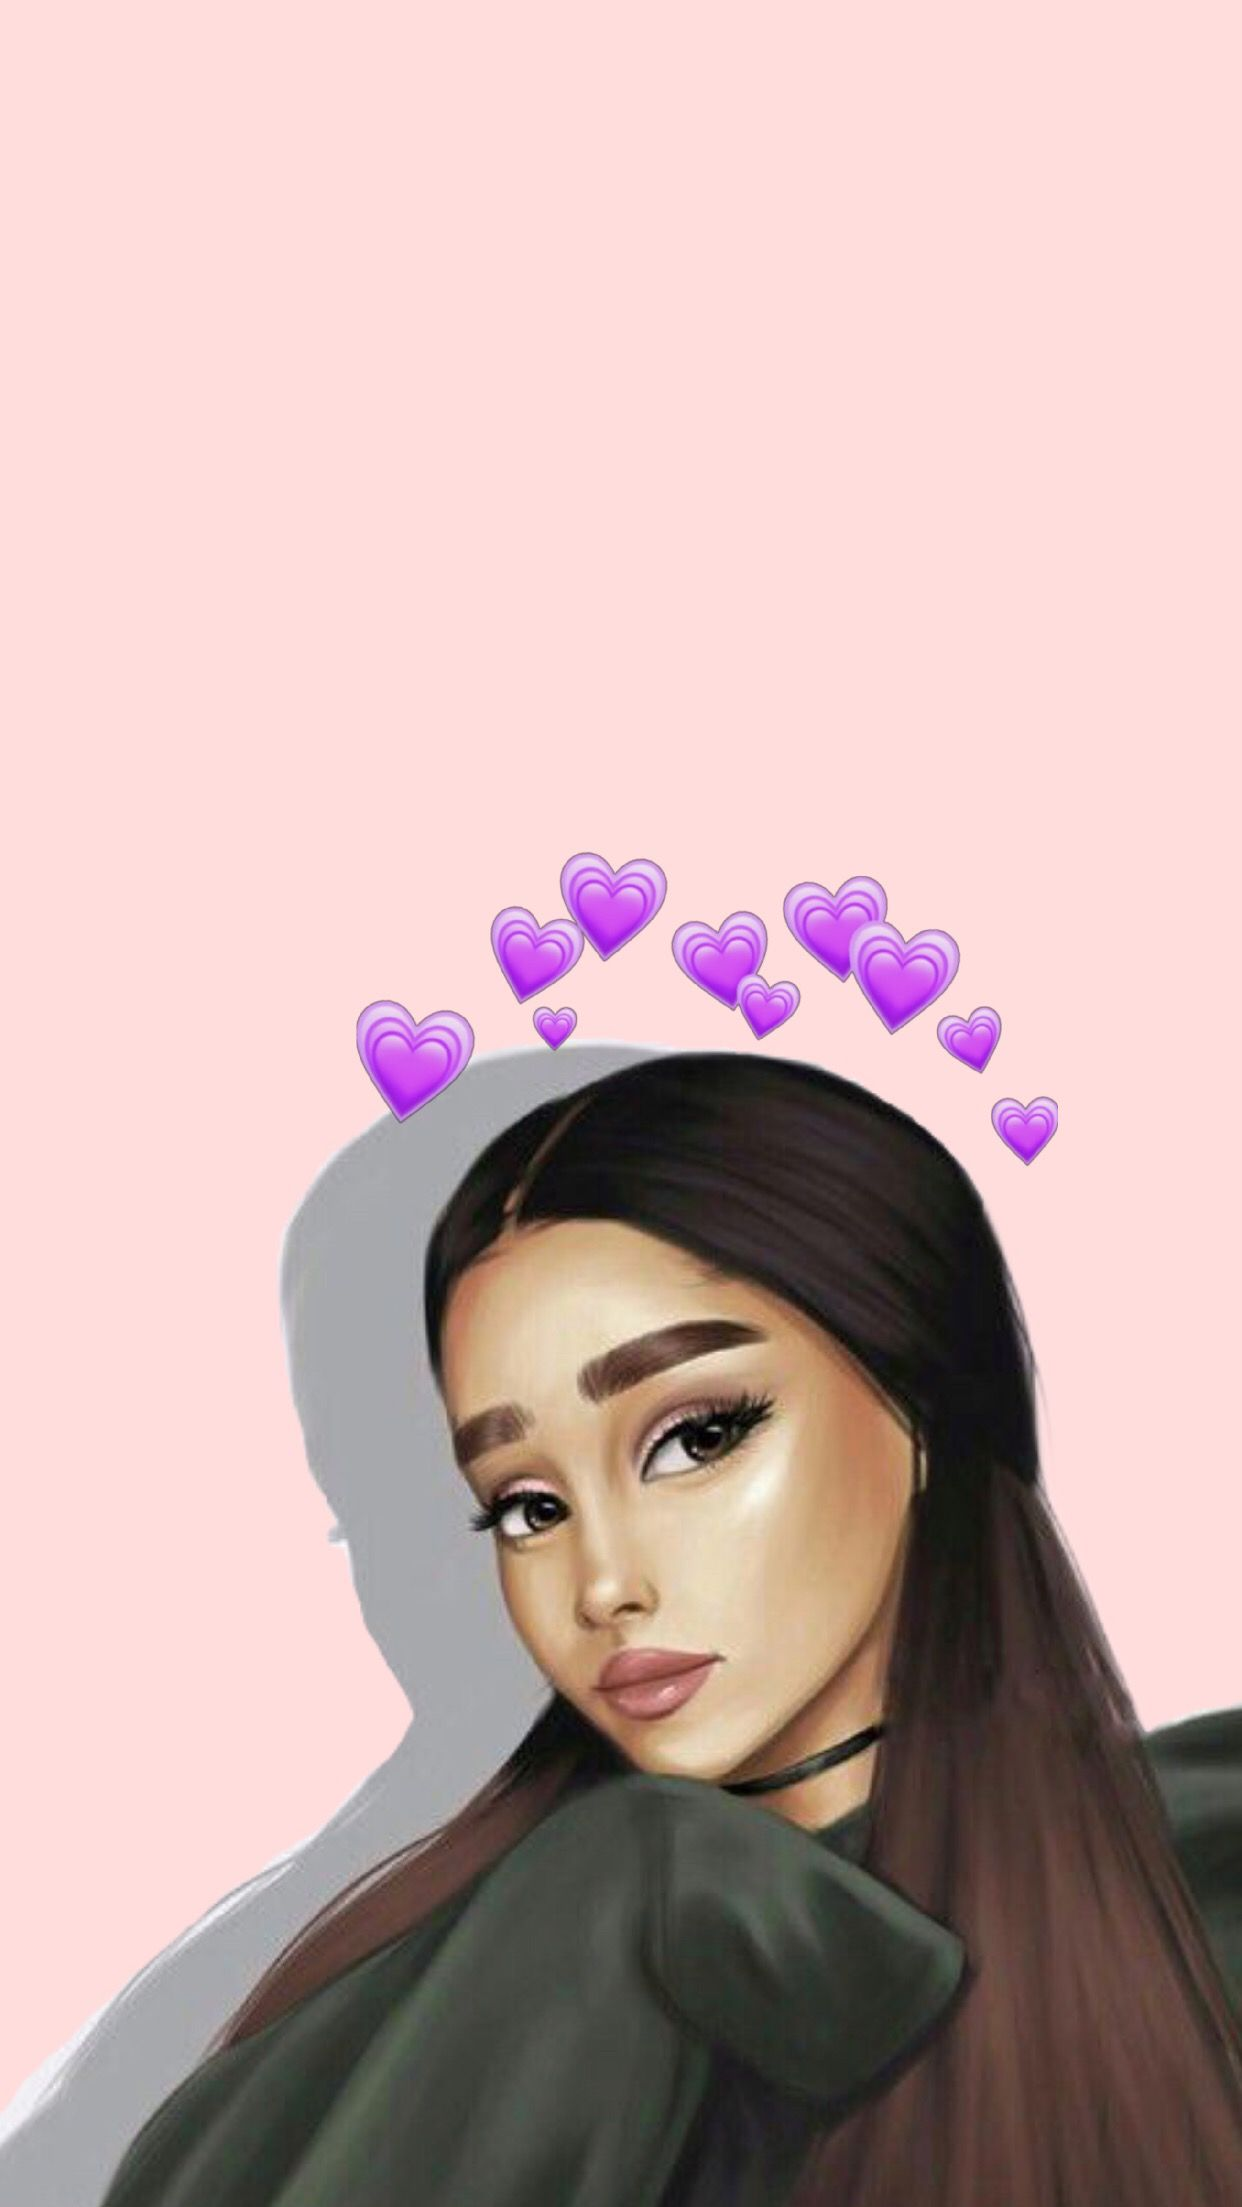 Pin by klondi on a r i a n a Ariana grande drawings